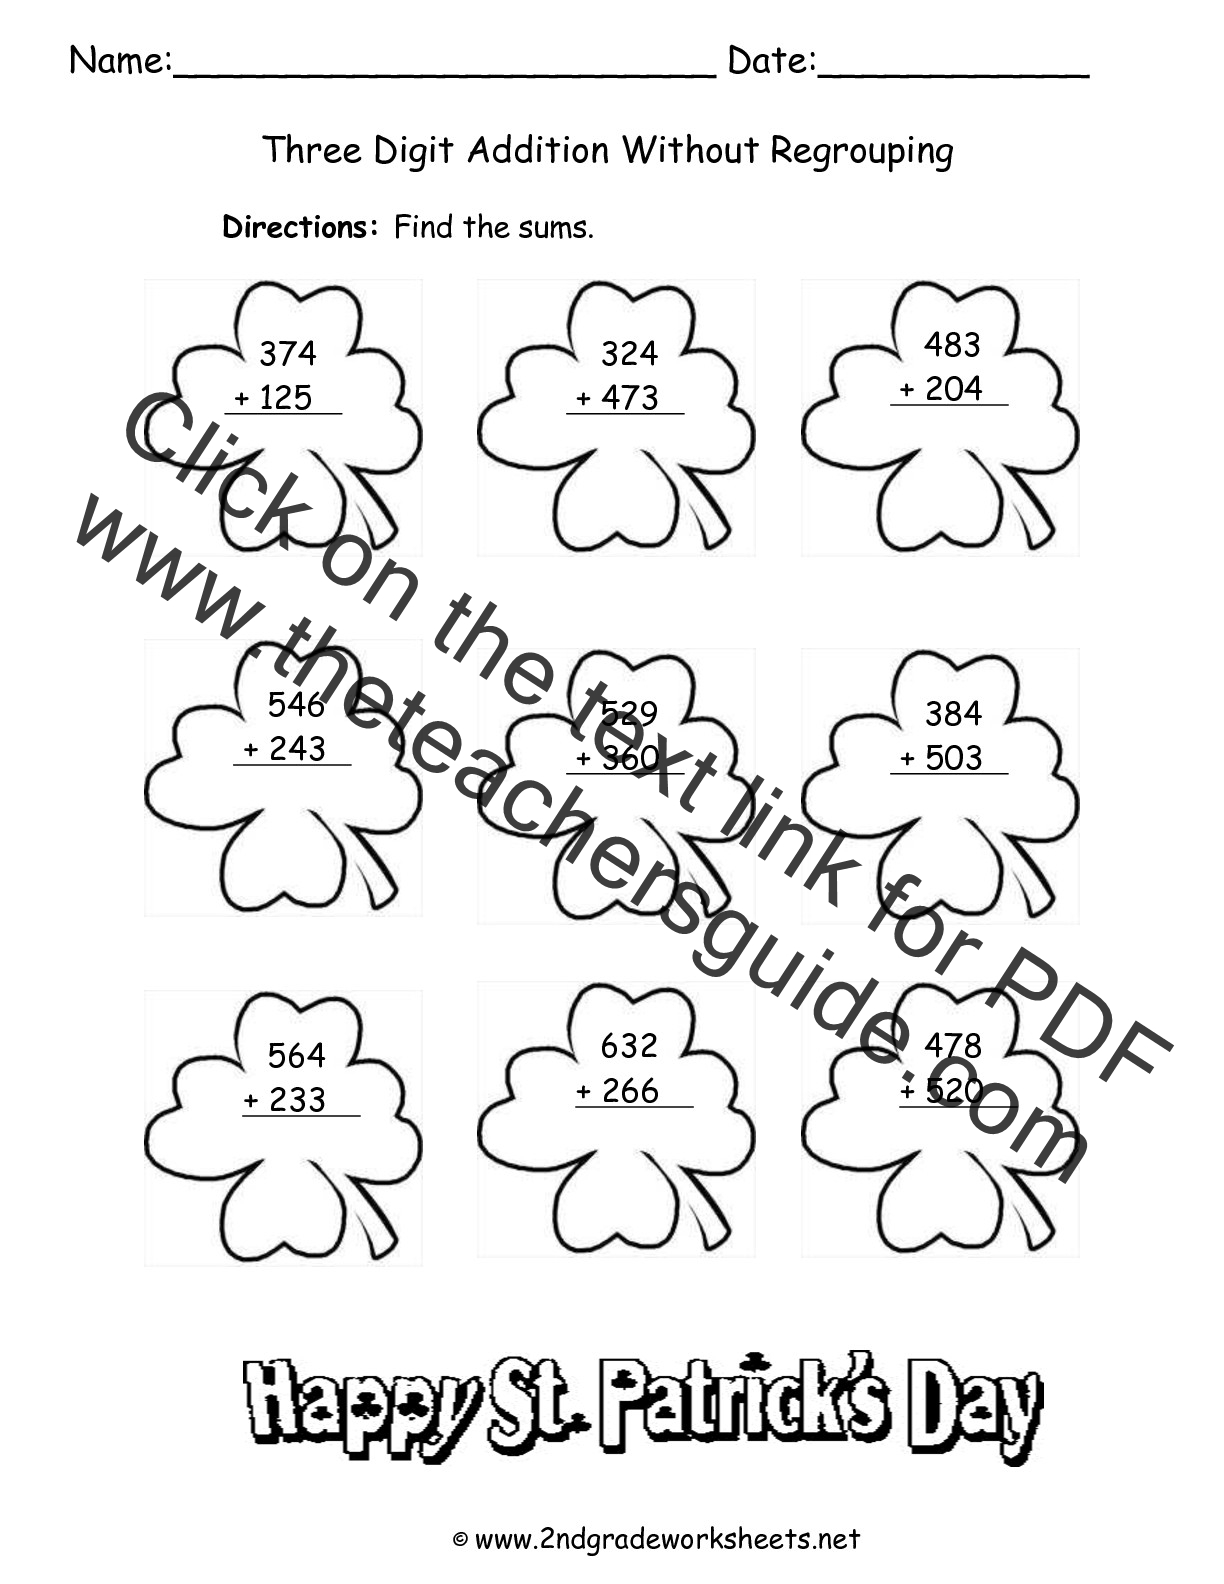 st patricks day worksheet - St Patricks Day Pictures To Color 2